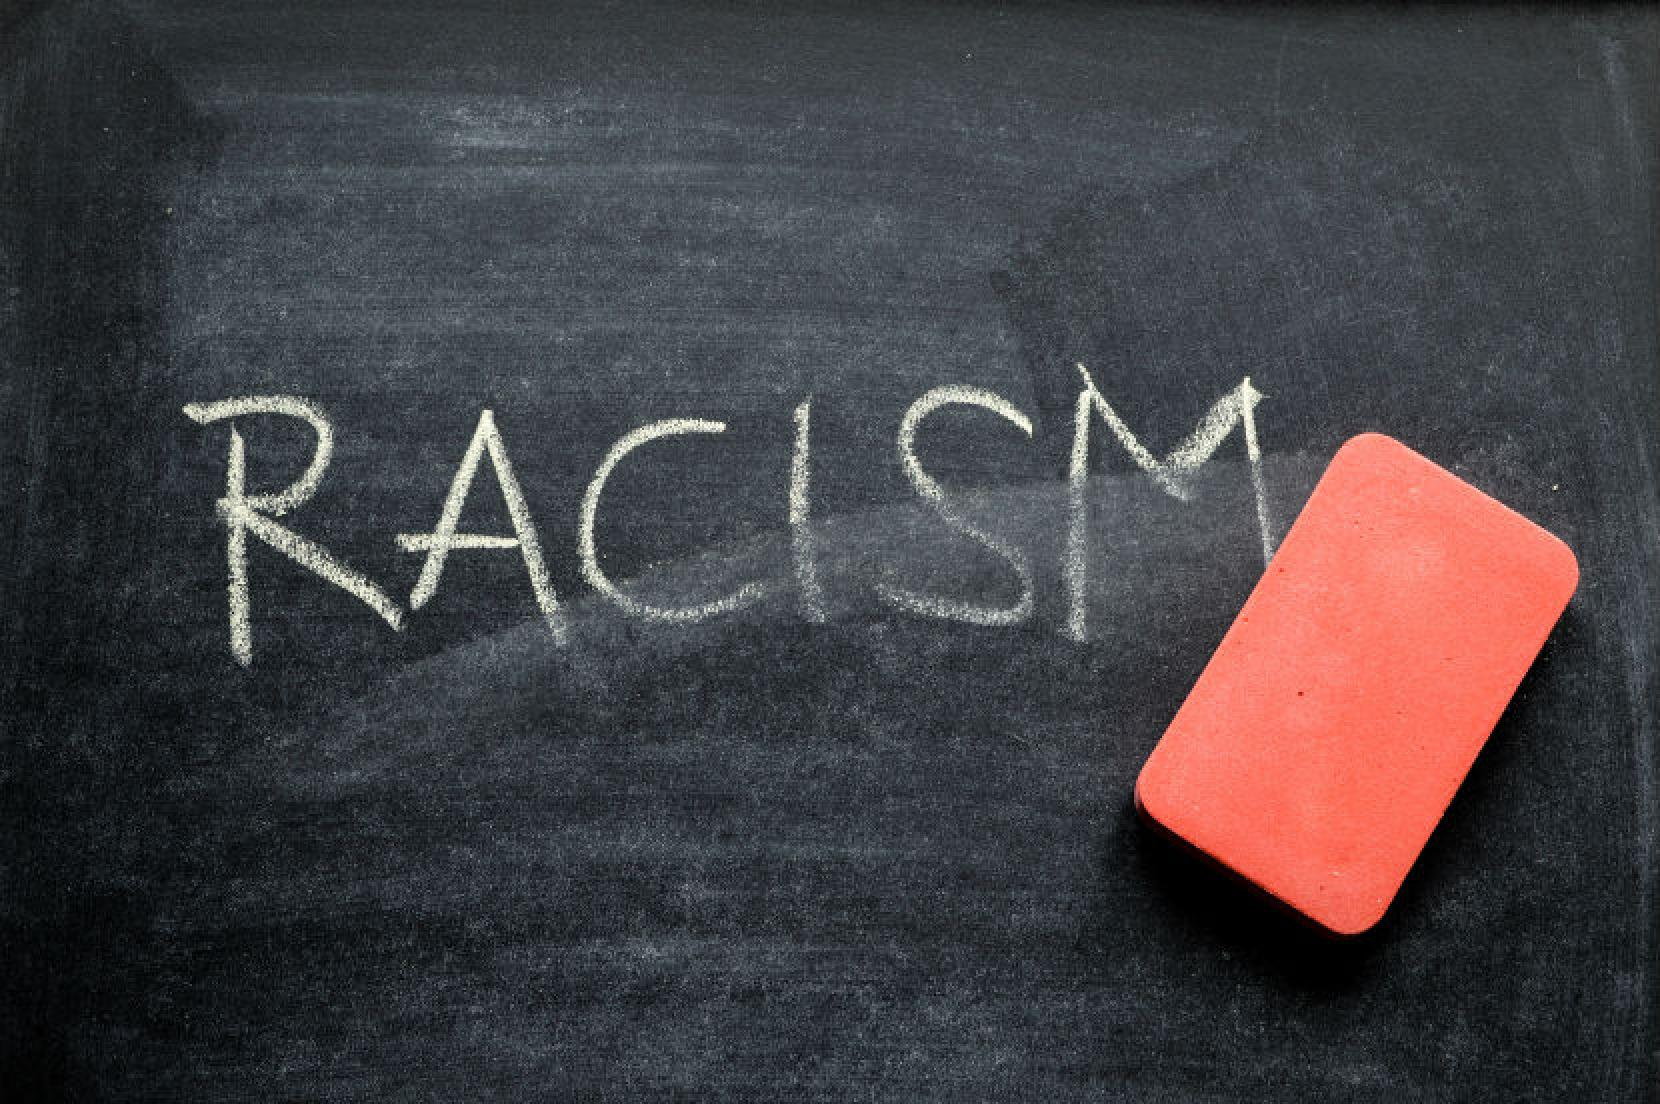 Group seeks to determine community views on racism